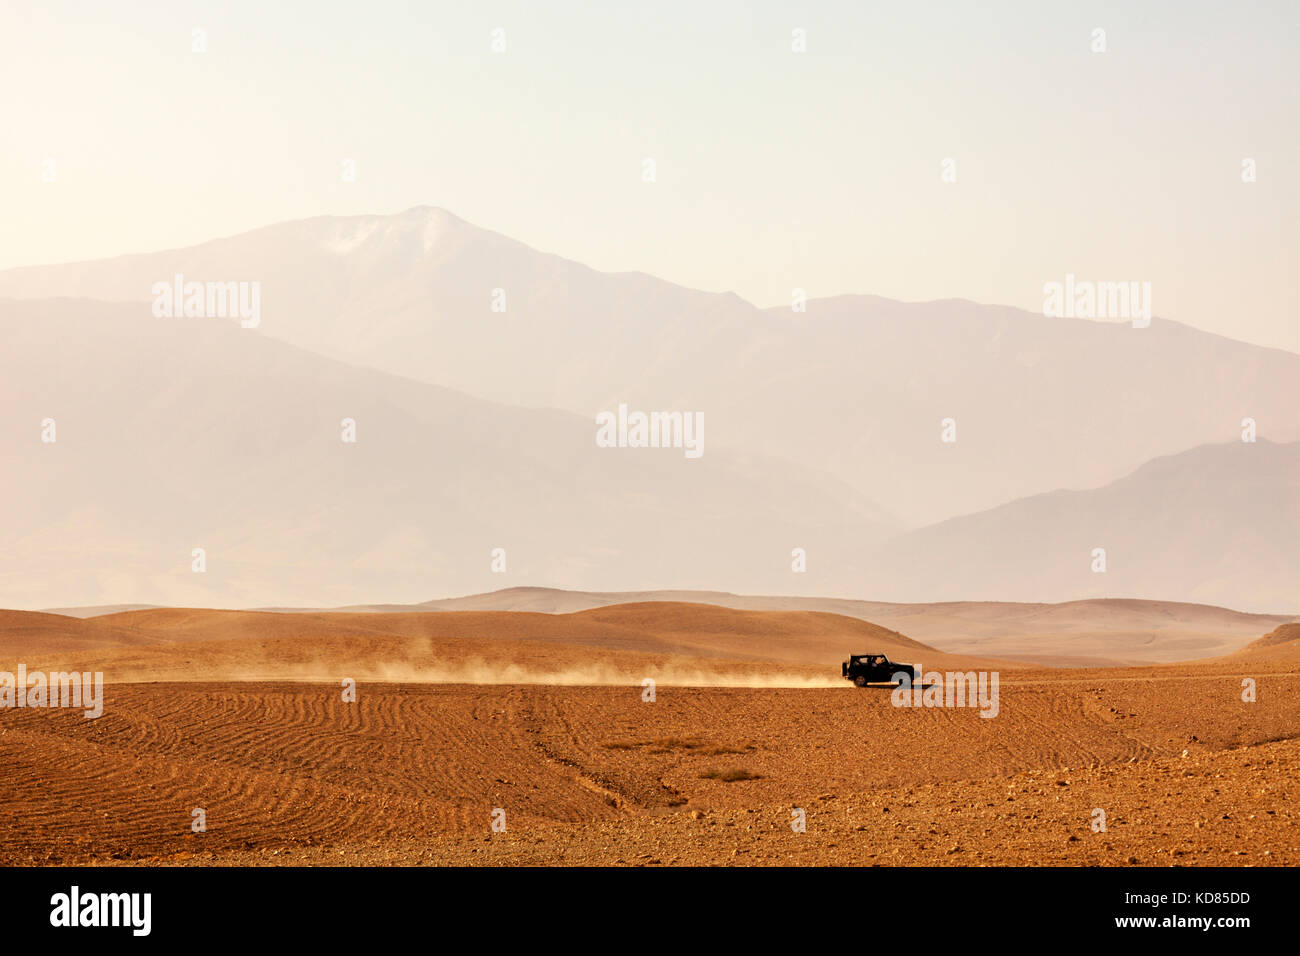 Offroad vehicle driving through Agafay desert, Morocco, Atlas Mountains vanishing in haze - Stock Image